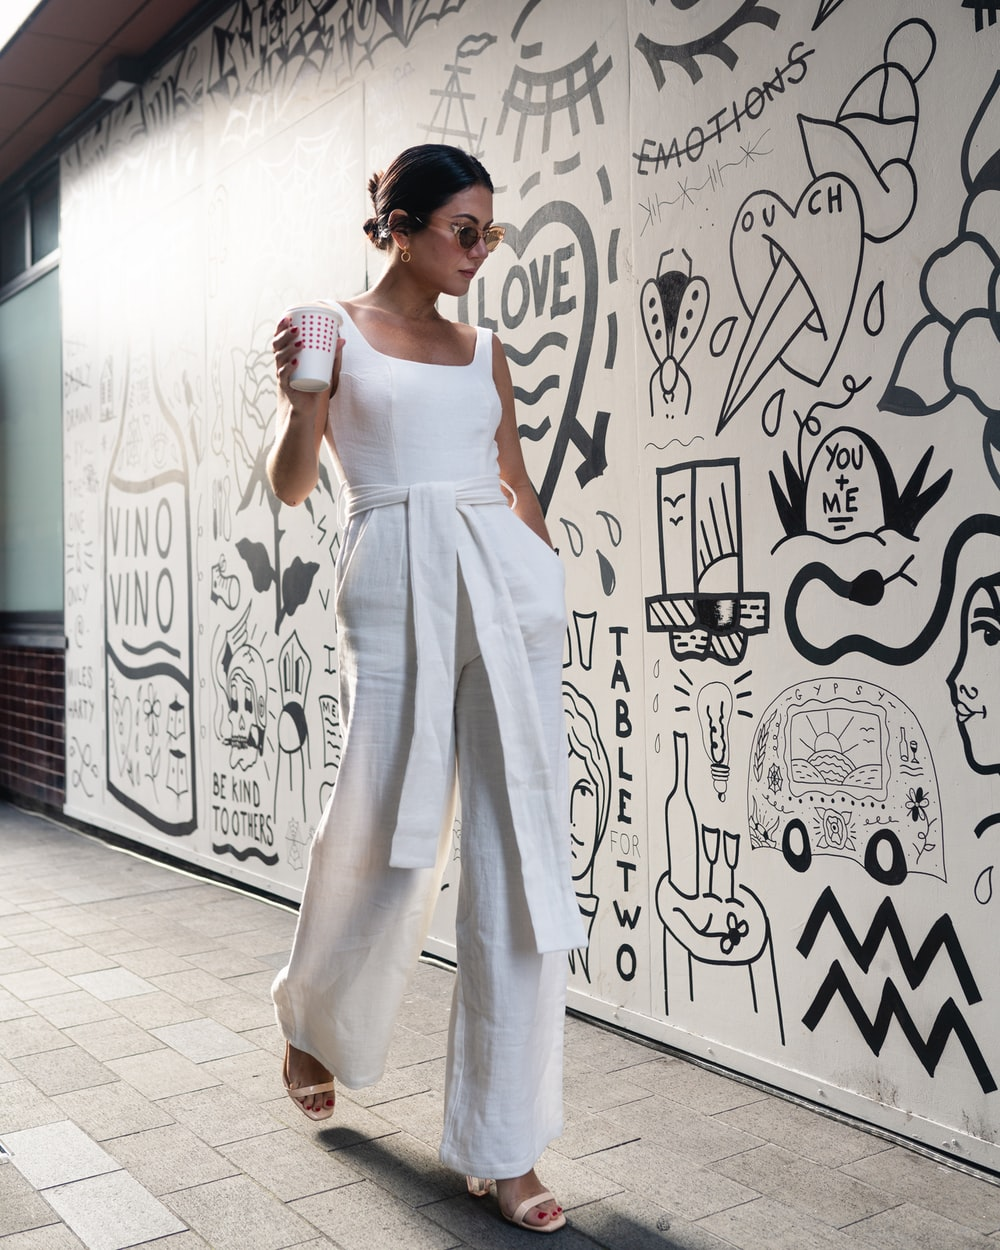 woman holding cup walking beside wall